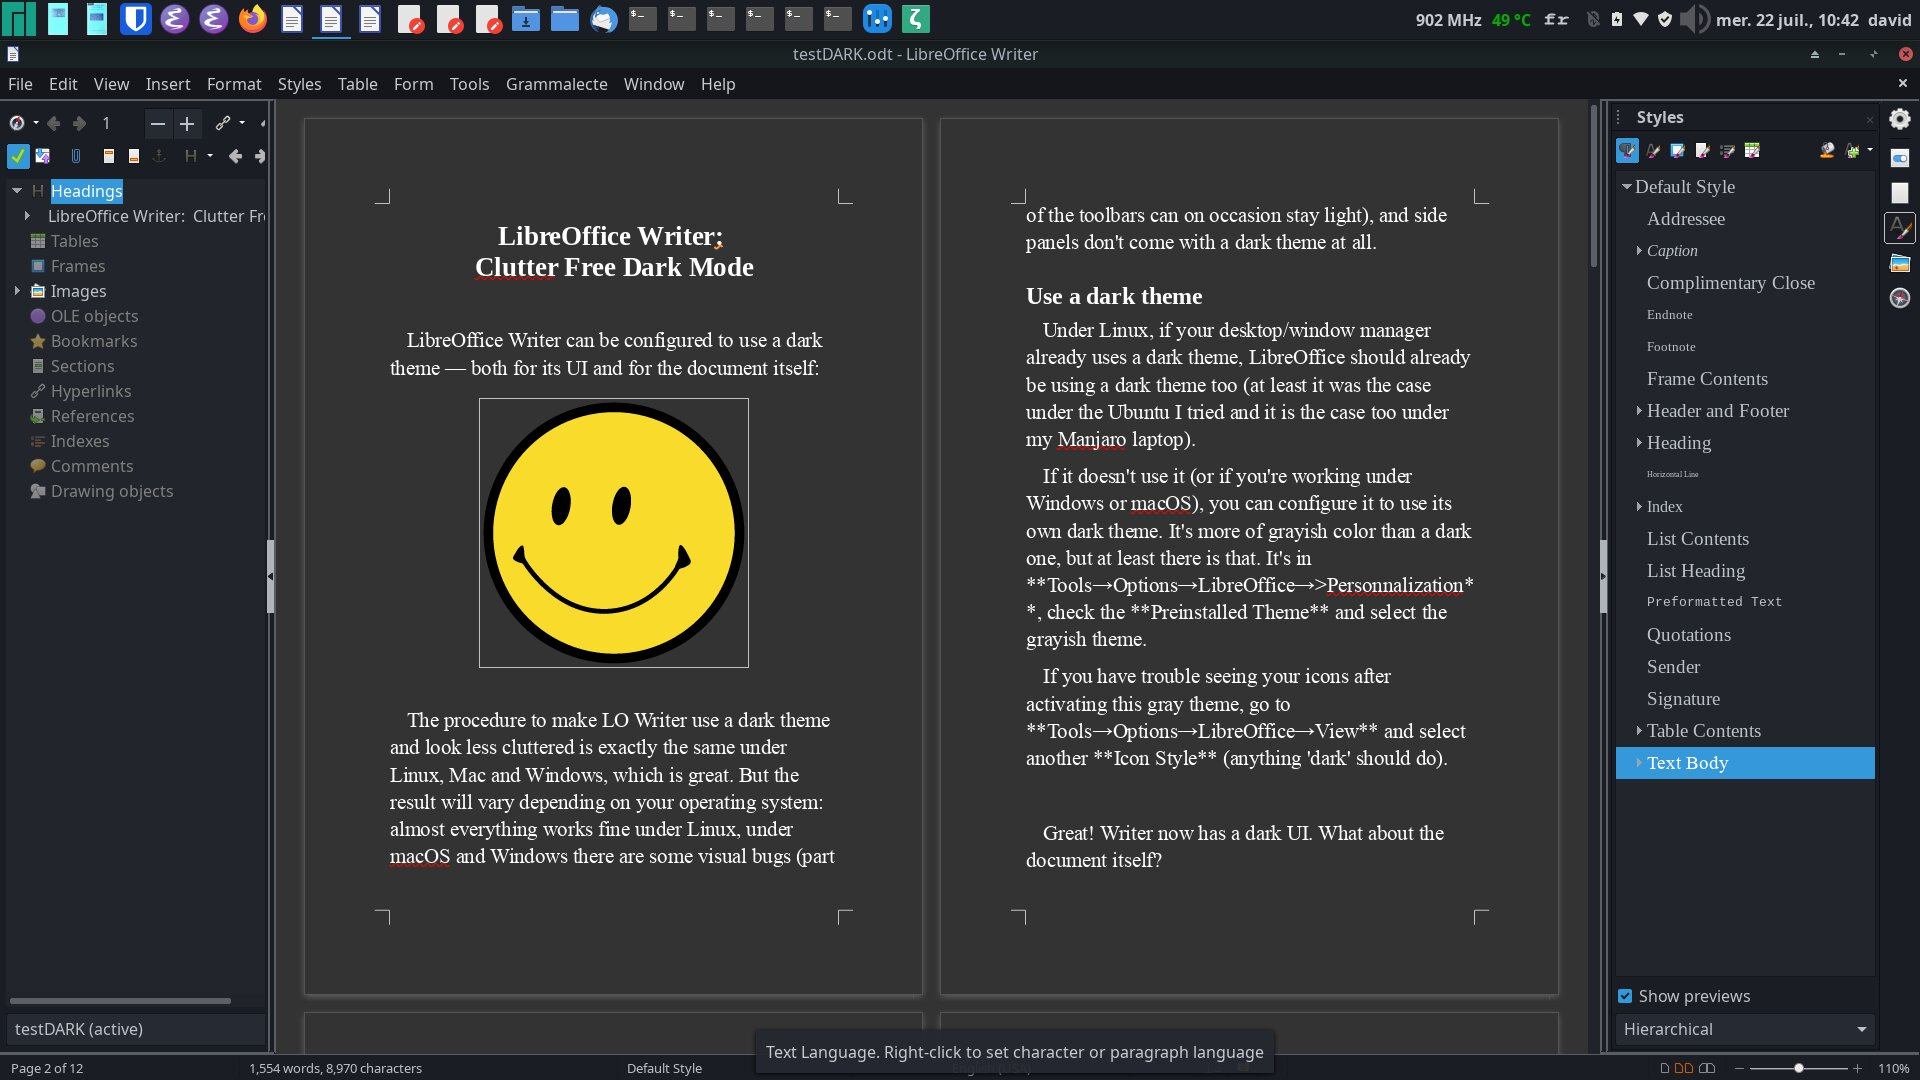 LibreOffice Writer in dark mode, with panels displayed and two pages view